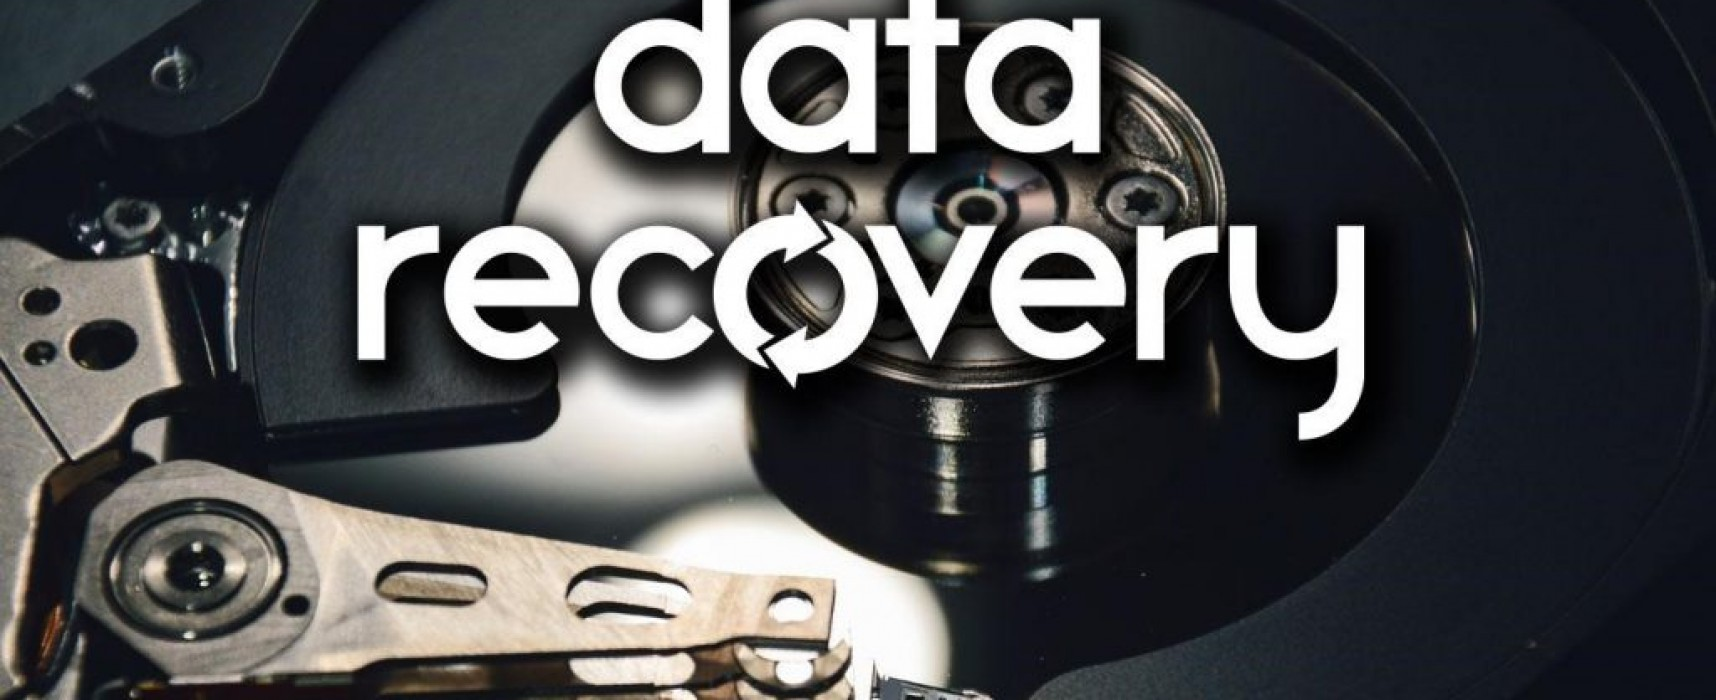 EaseUS – Easy Recovery of Your Lost Data for Free